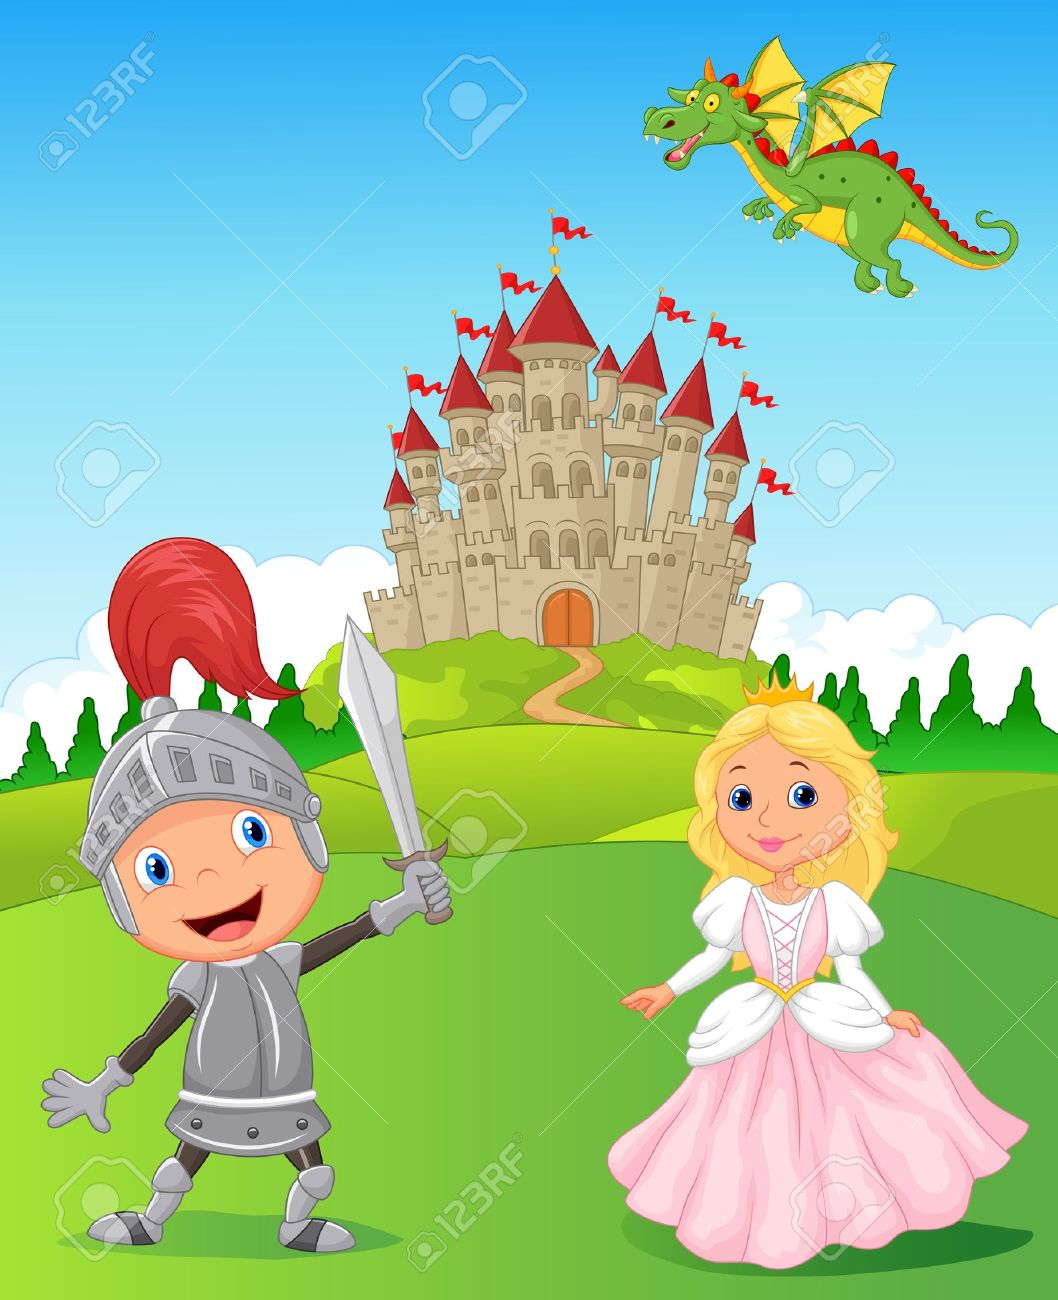 cartoon knight princess and dragon royalty free cliparts vectors